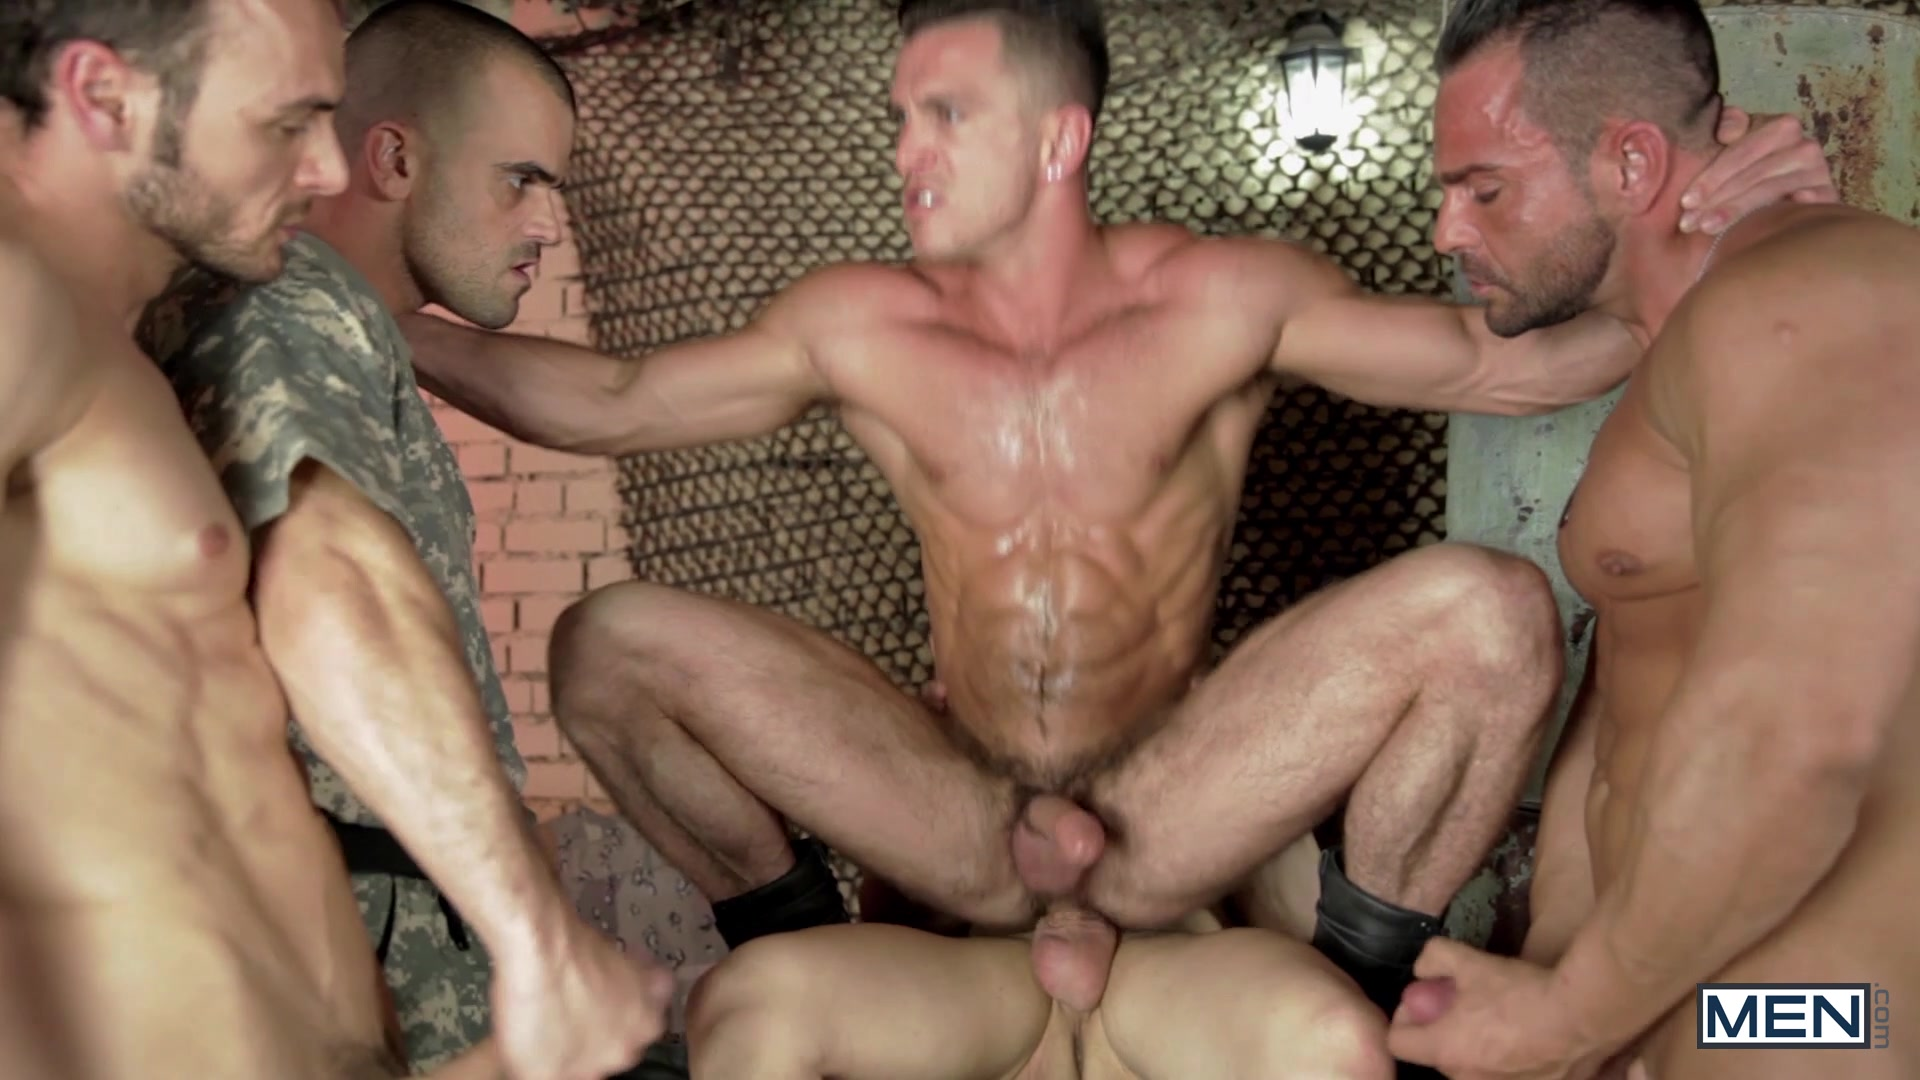 Watch Prisoner Of War Part 4 – Jizz Orgy – Jo – Alex Brando – Allen King – Damien Crosse – Gabriel Vanderloo – Paddy O'brian (MEN.COM) Gay Porn Tube Videos Gifs And Free XXX HD Sex Movies Photos Online